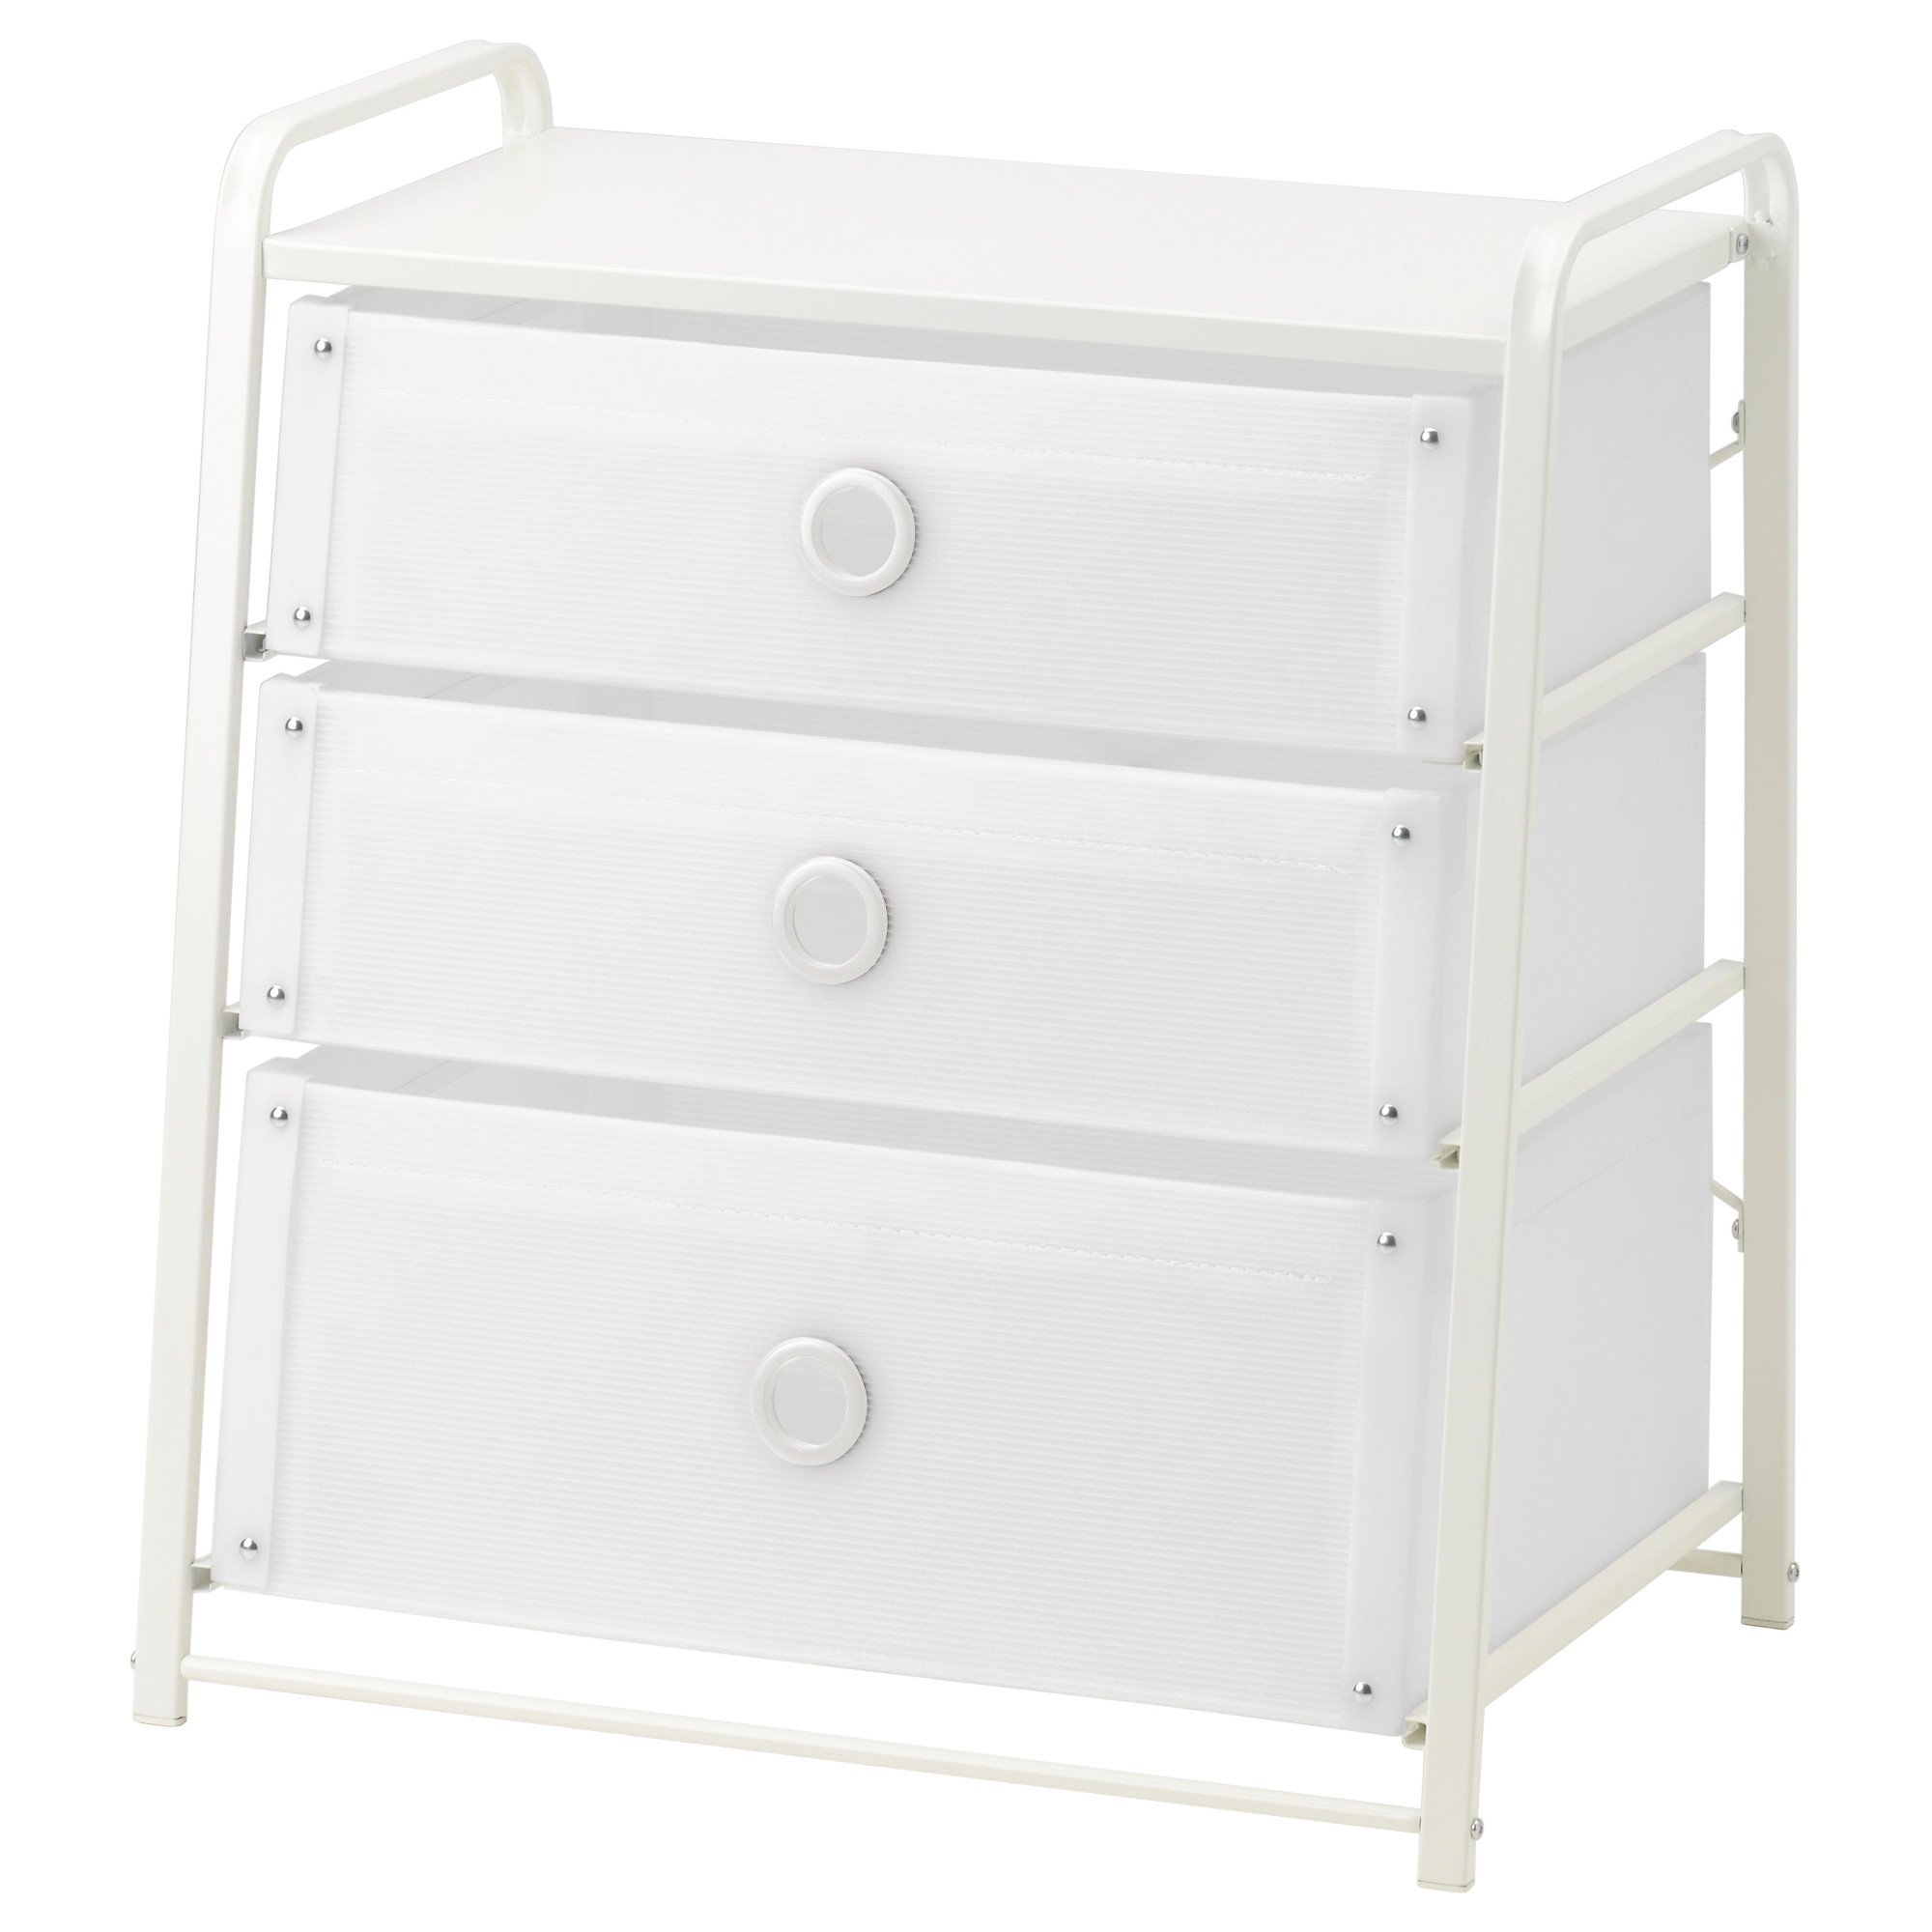 Unique Furniture Design Cabinet with 4 Drawer Dresser for Bedroom Ideas: White Color 4 Drawer Dresser Ideas